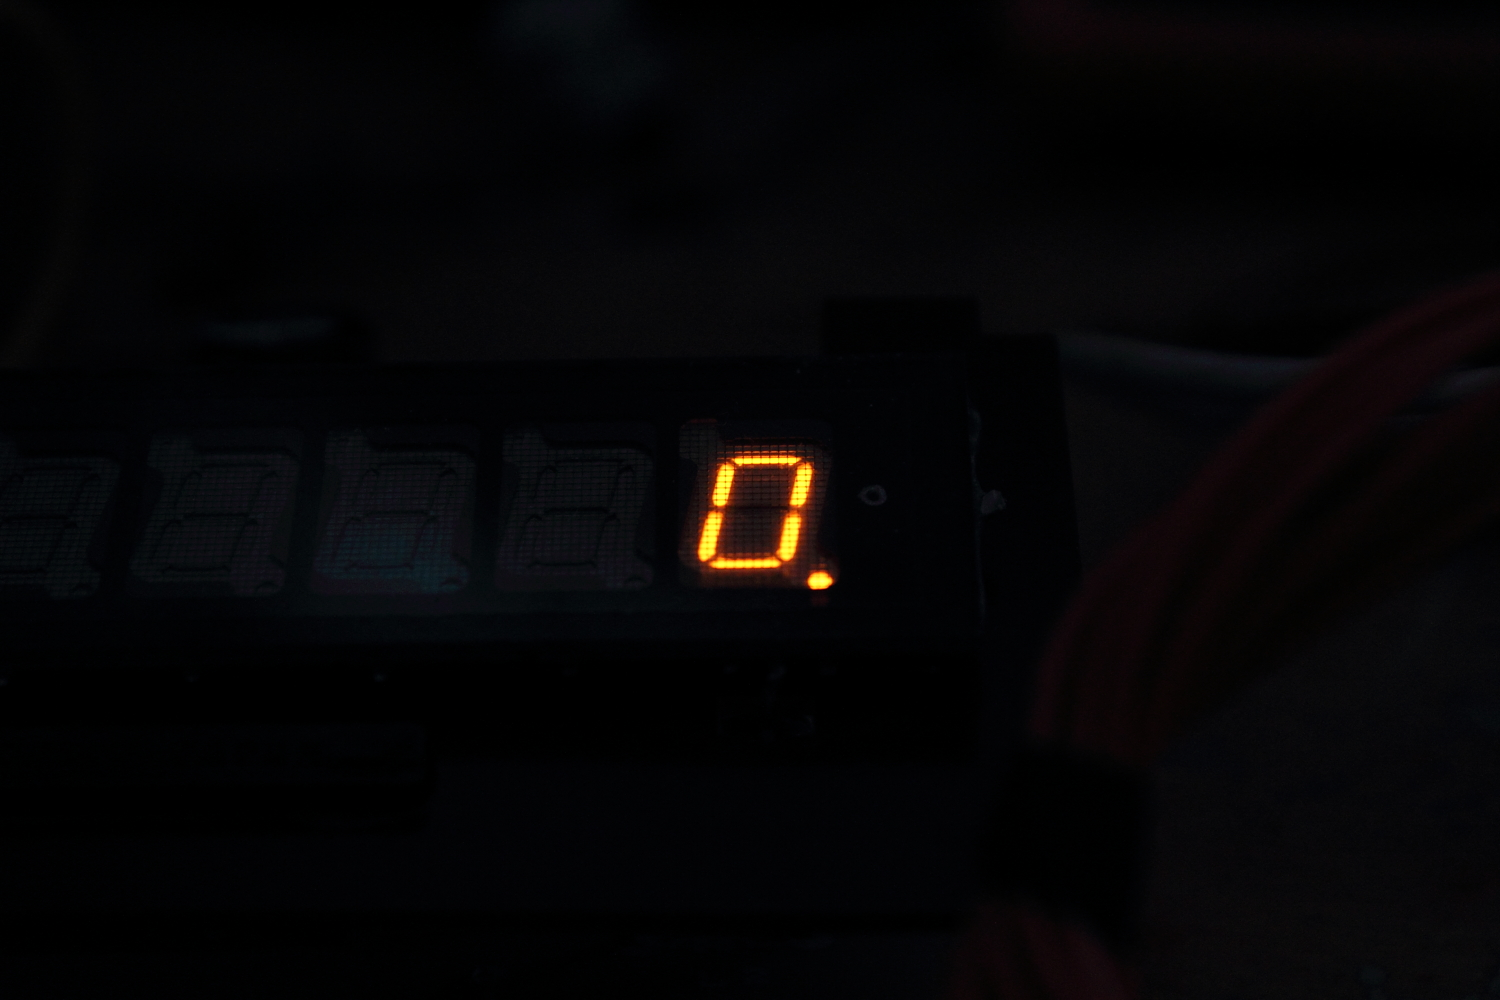 Unitrex 1200 And Lesson Ketturi Electronics Updated Nixie Clock Schematic After Whole Terrible Tinkering Getting Fingers Burned Once Shocked From Some Weird Chargeim Sure I Drained Every Cap Got Nice Orange Glow